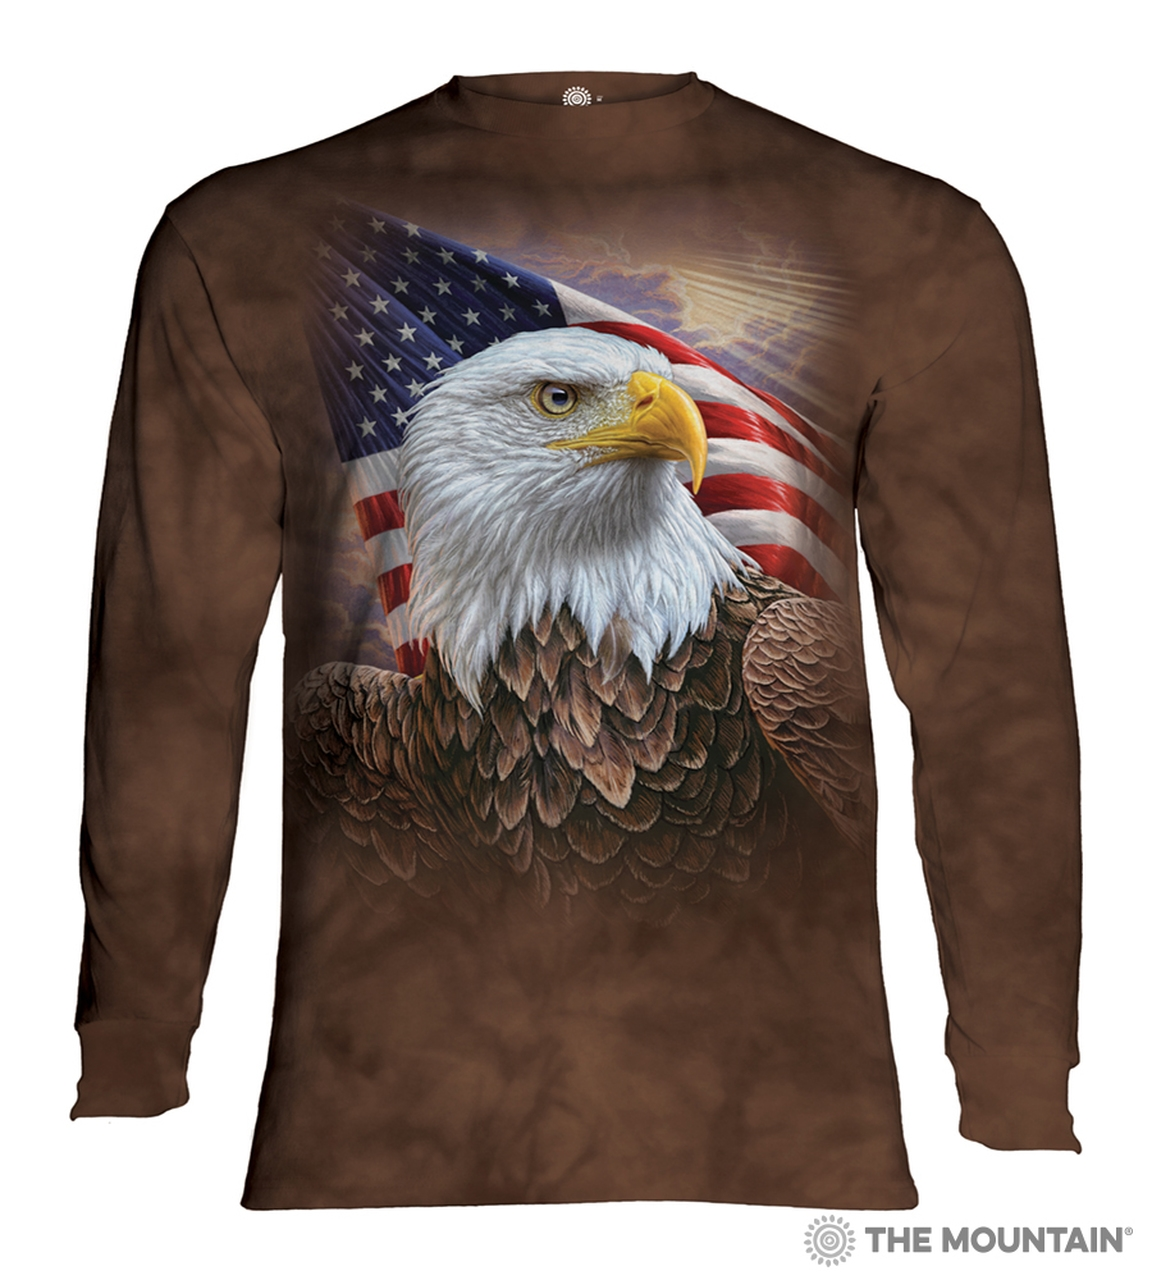 Independence Eagle - 45-4848 - Adult Long Sleeve T-shirt